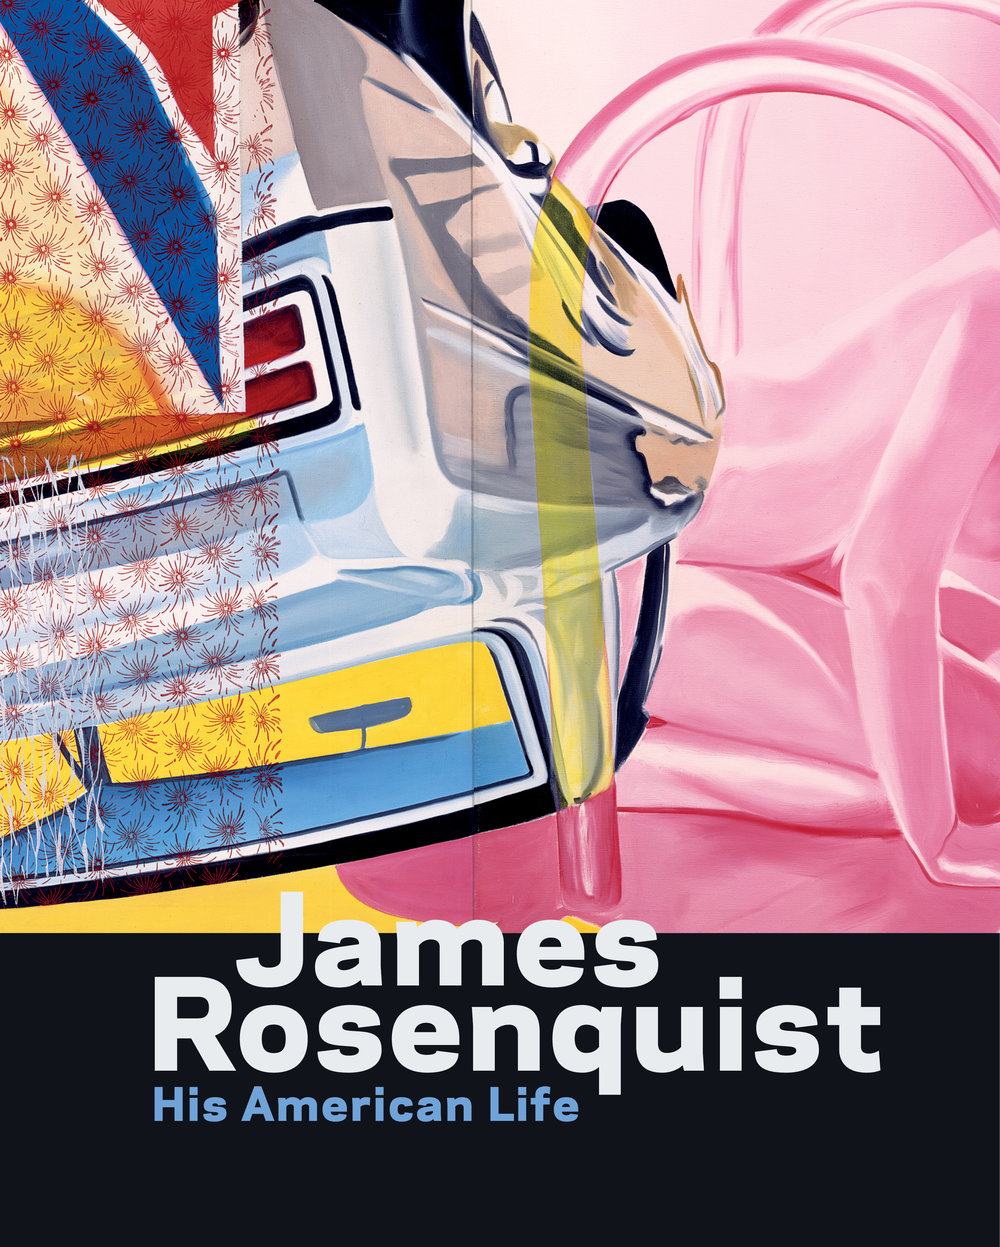 Findlay, Michael. (2018) 'Jim', James Rosenquist: His American Life, New York: Rizzoli, p. 11-13.